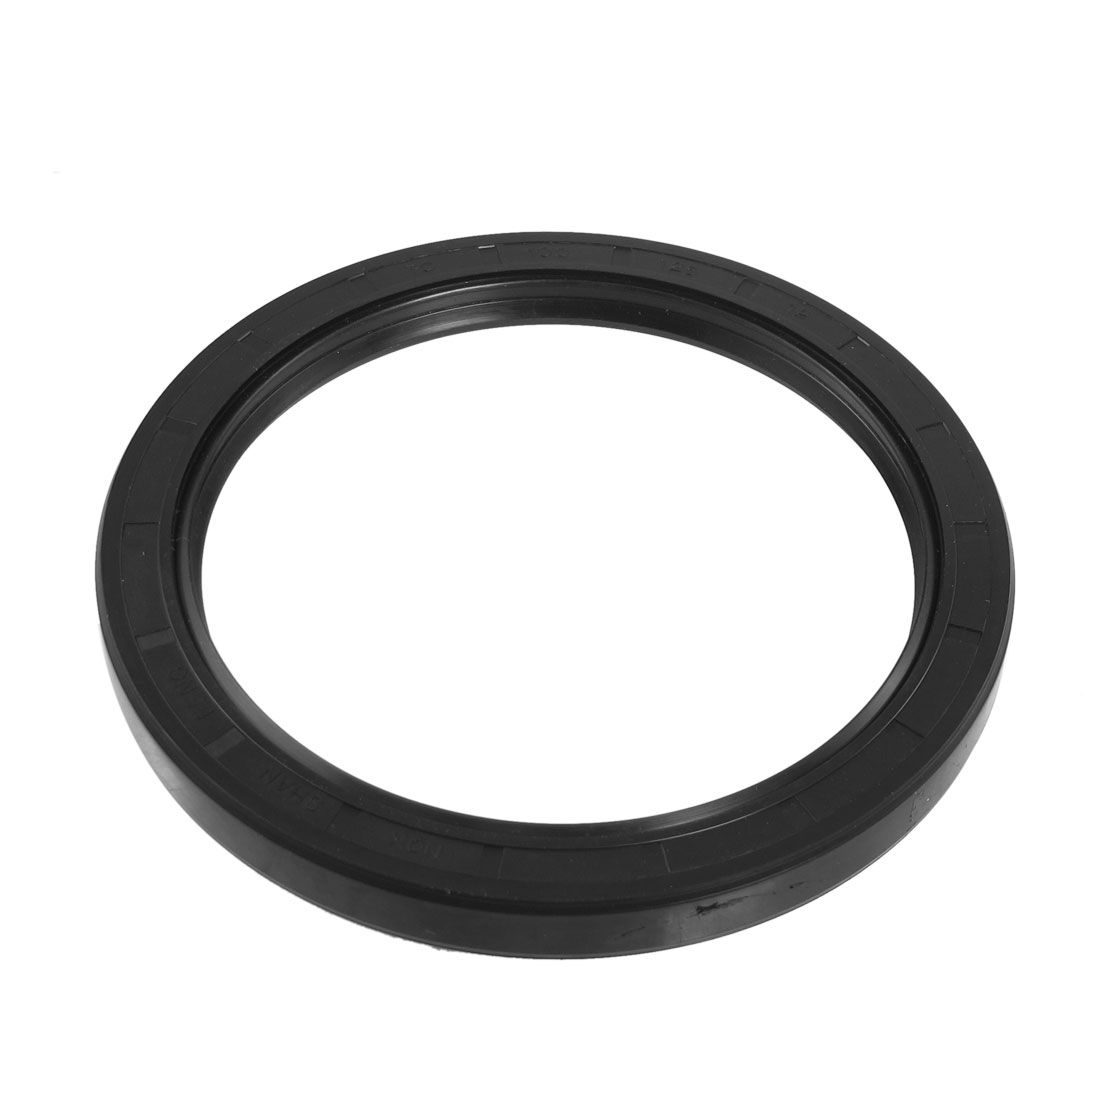 Black Nitrile Rubber Dual Lips Oil Shaft Seal TC 100mm x 125mm x 12mm